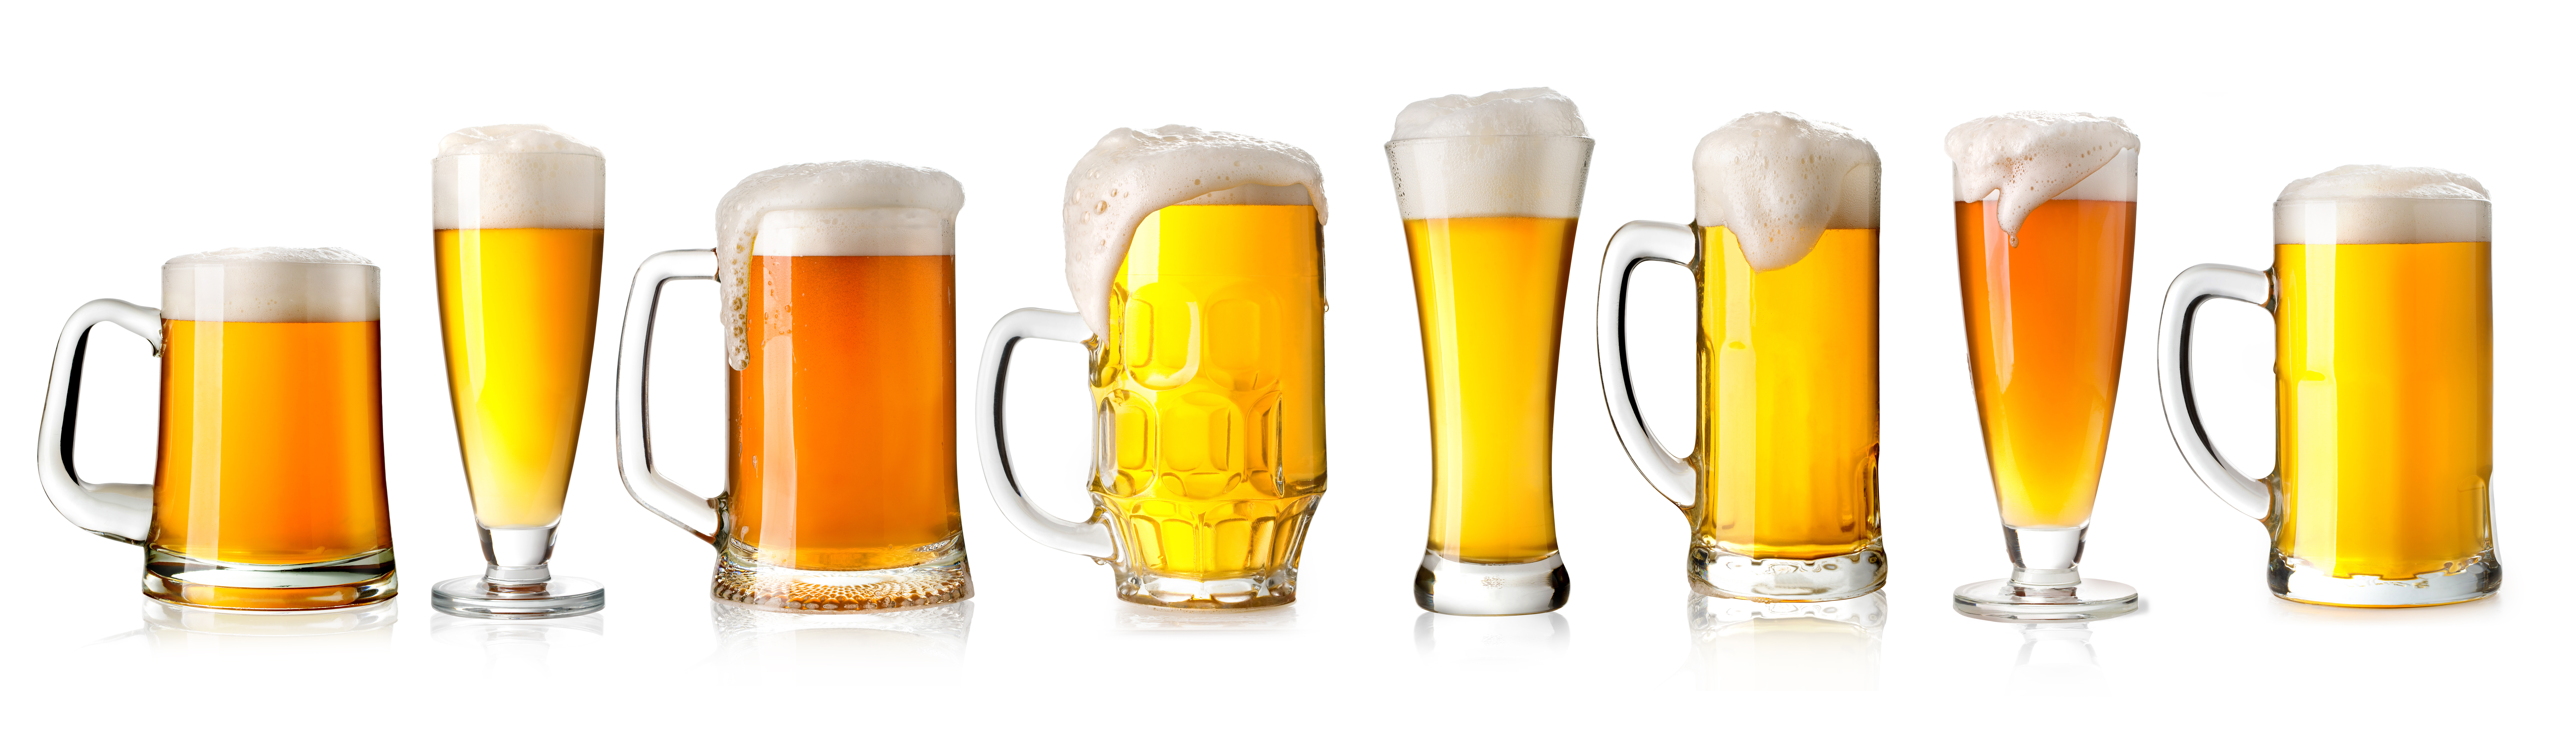 Beer, Types of Glasses